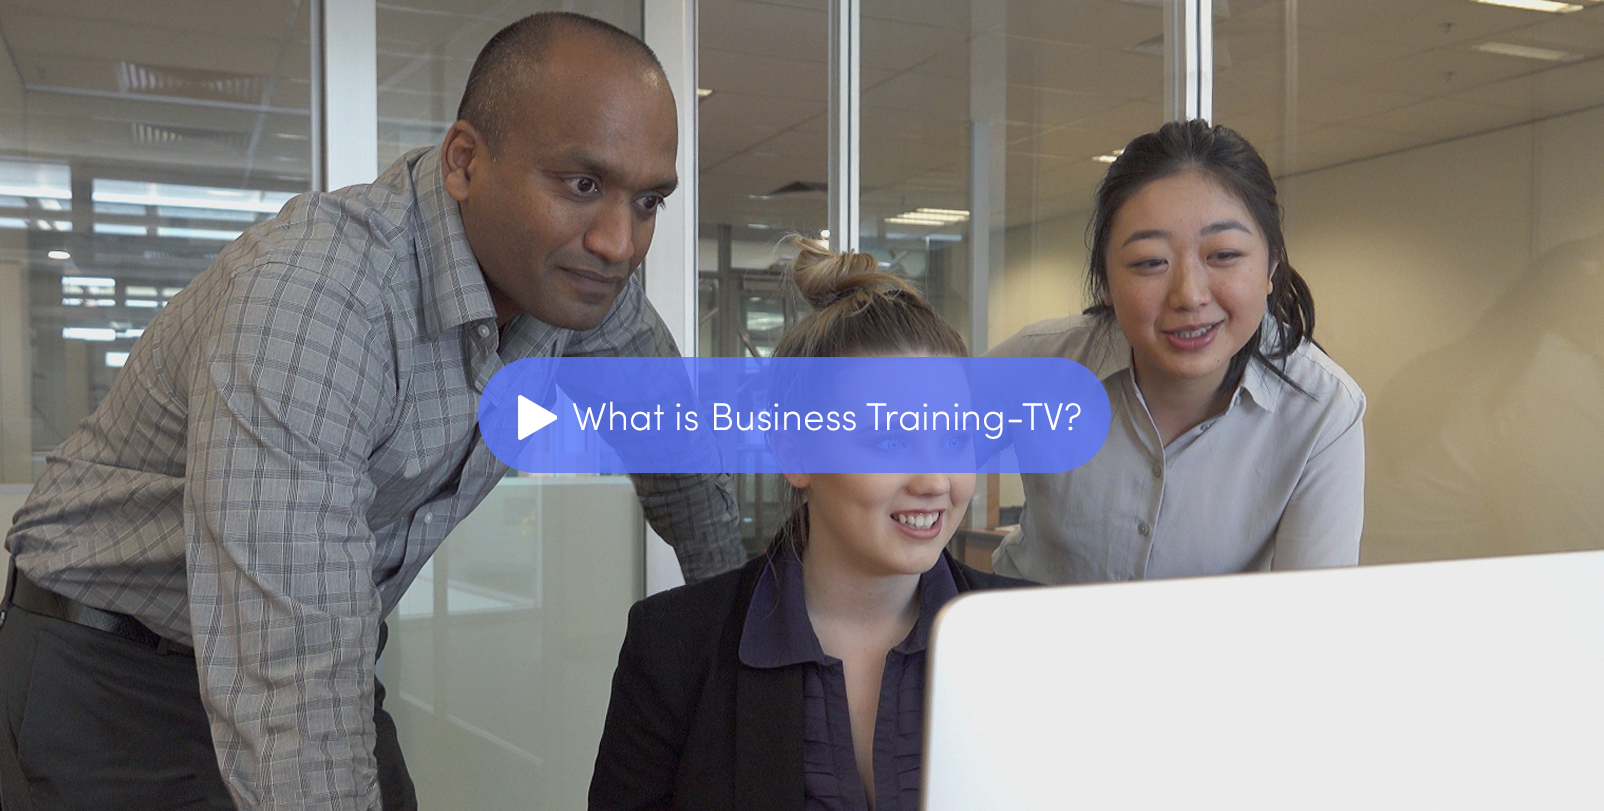 Business Training-TV